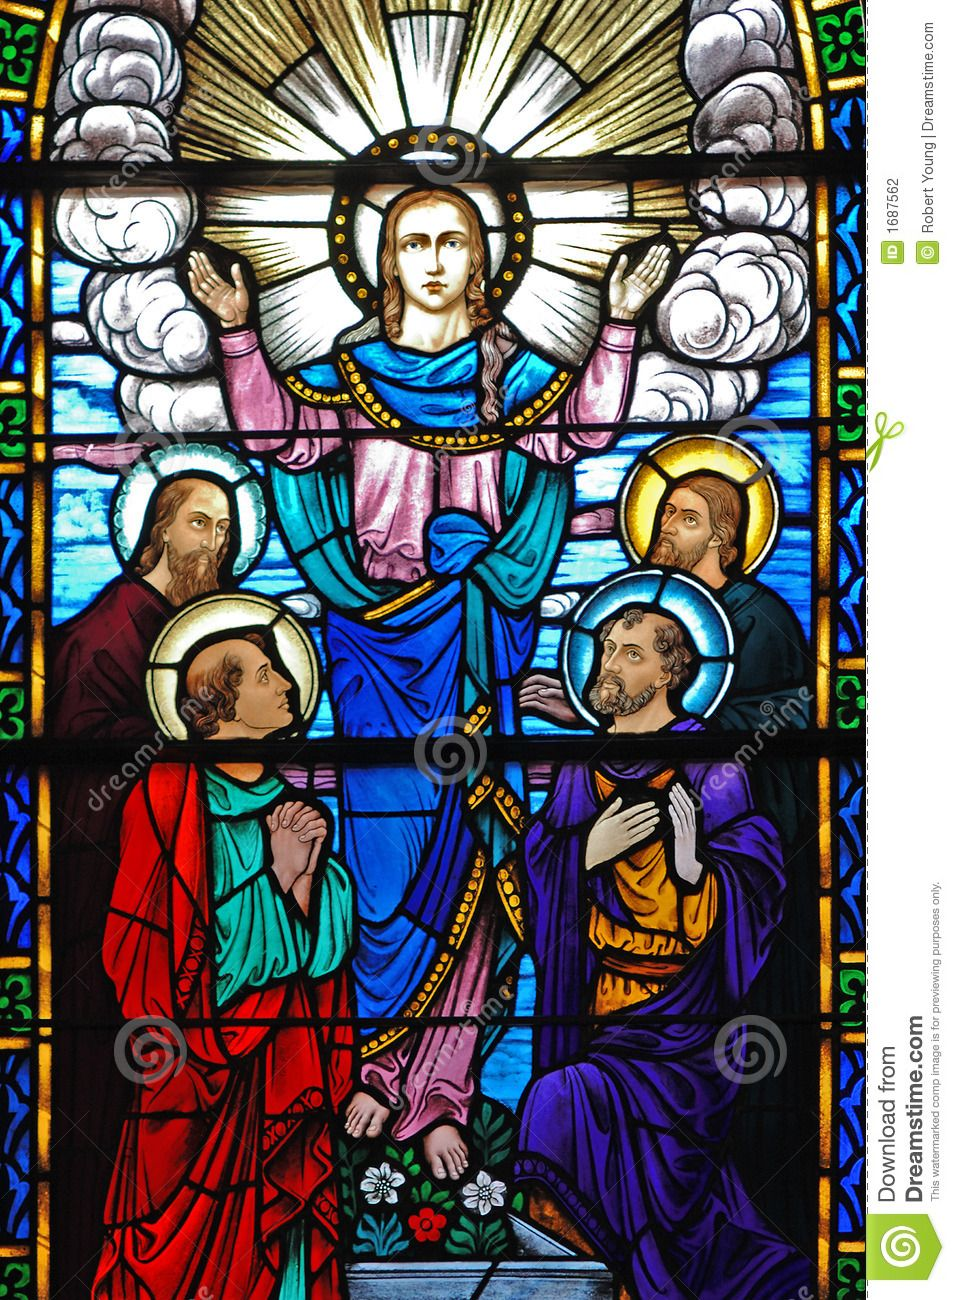 stained glass window christ his disciples pint